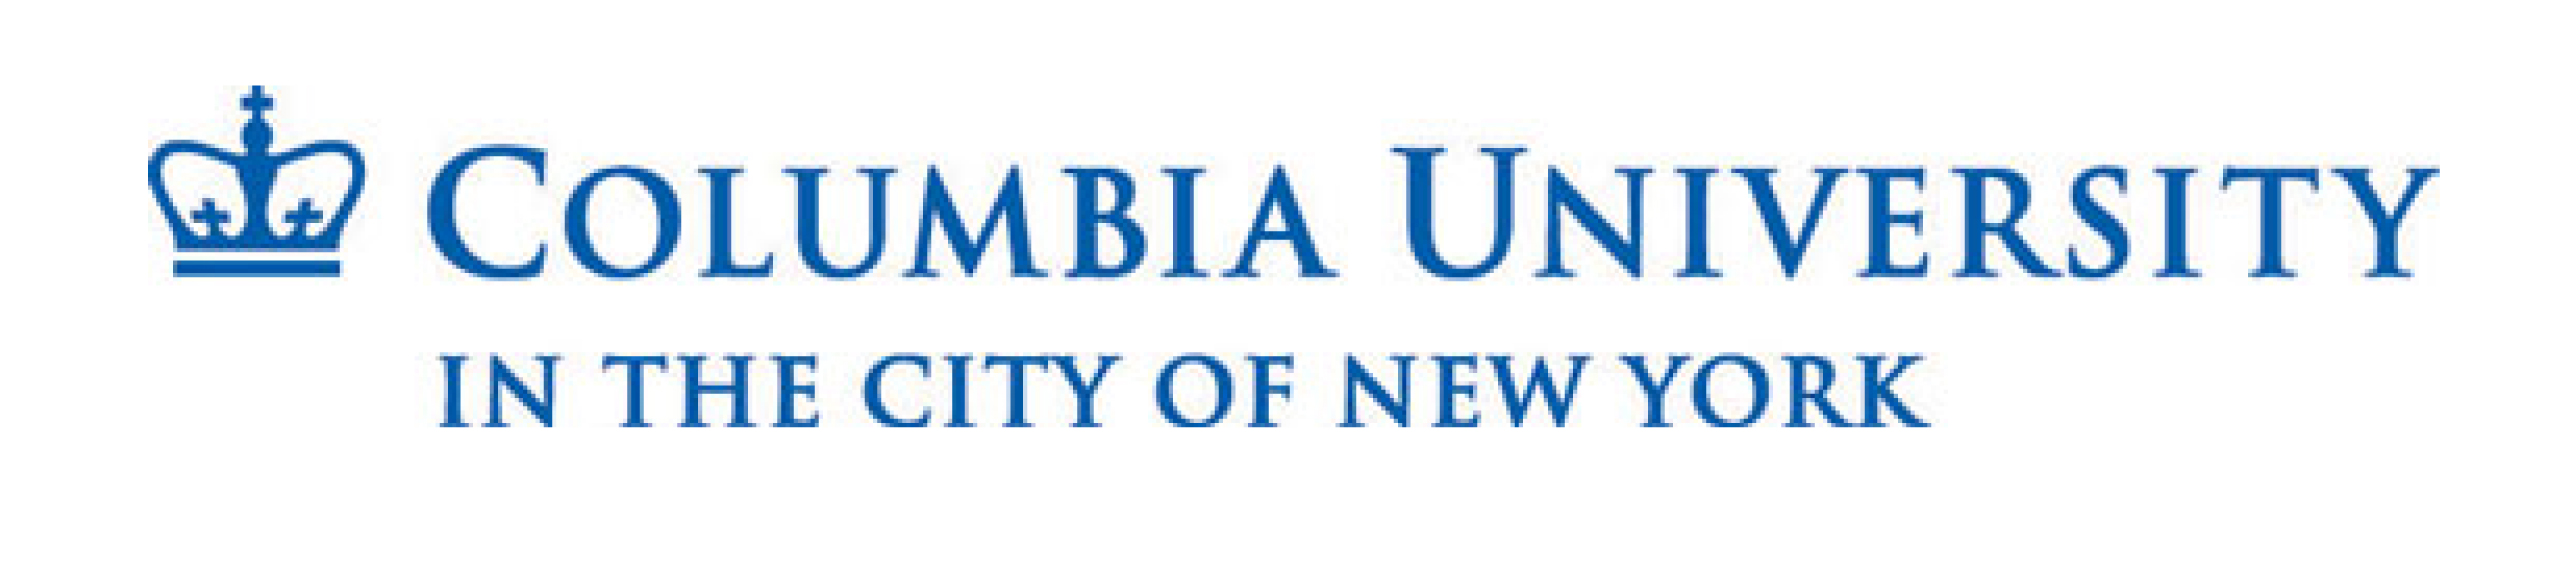 columbia_white_logo